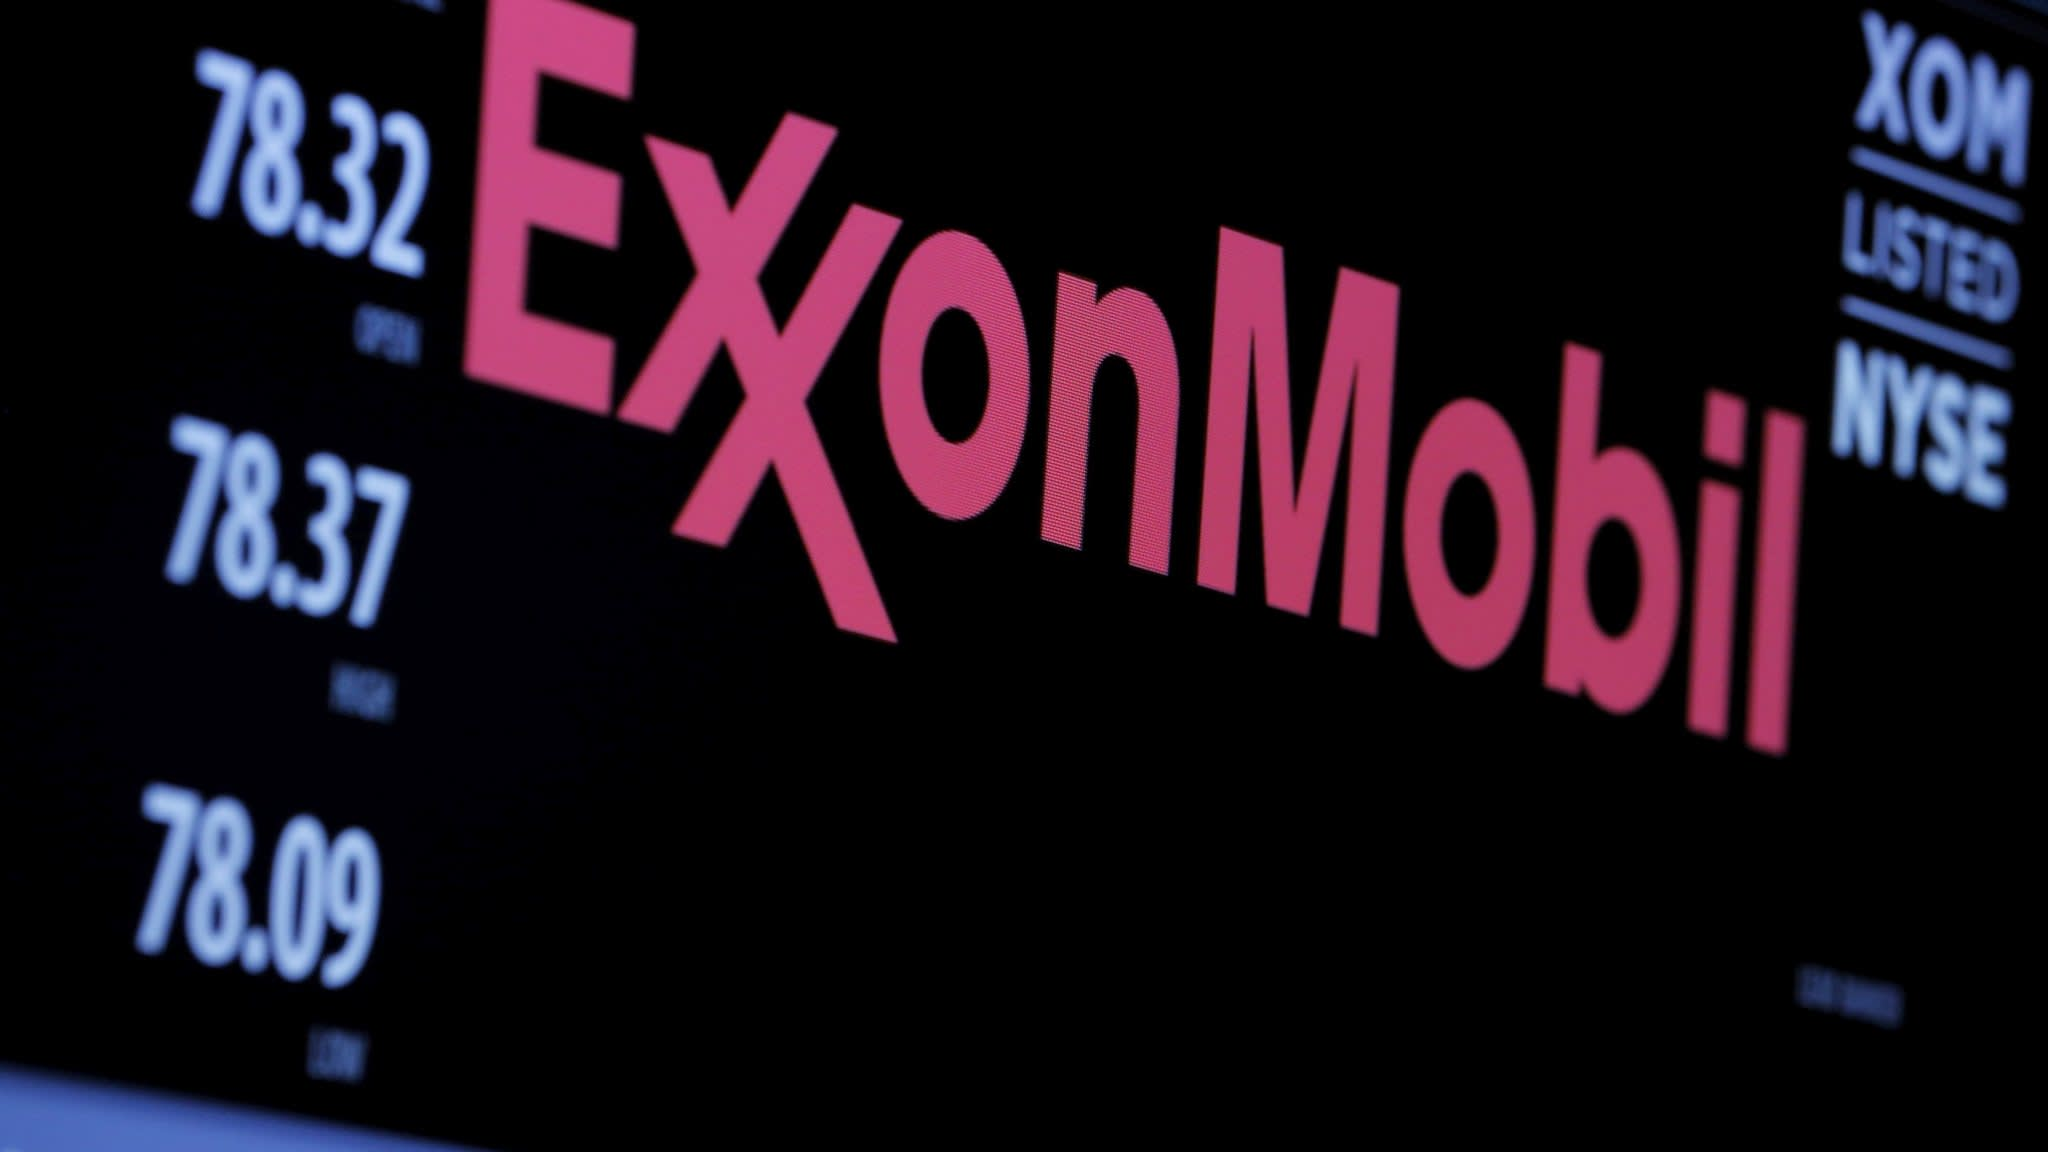 New York sues Exxon for misleading investors on climate change risks